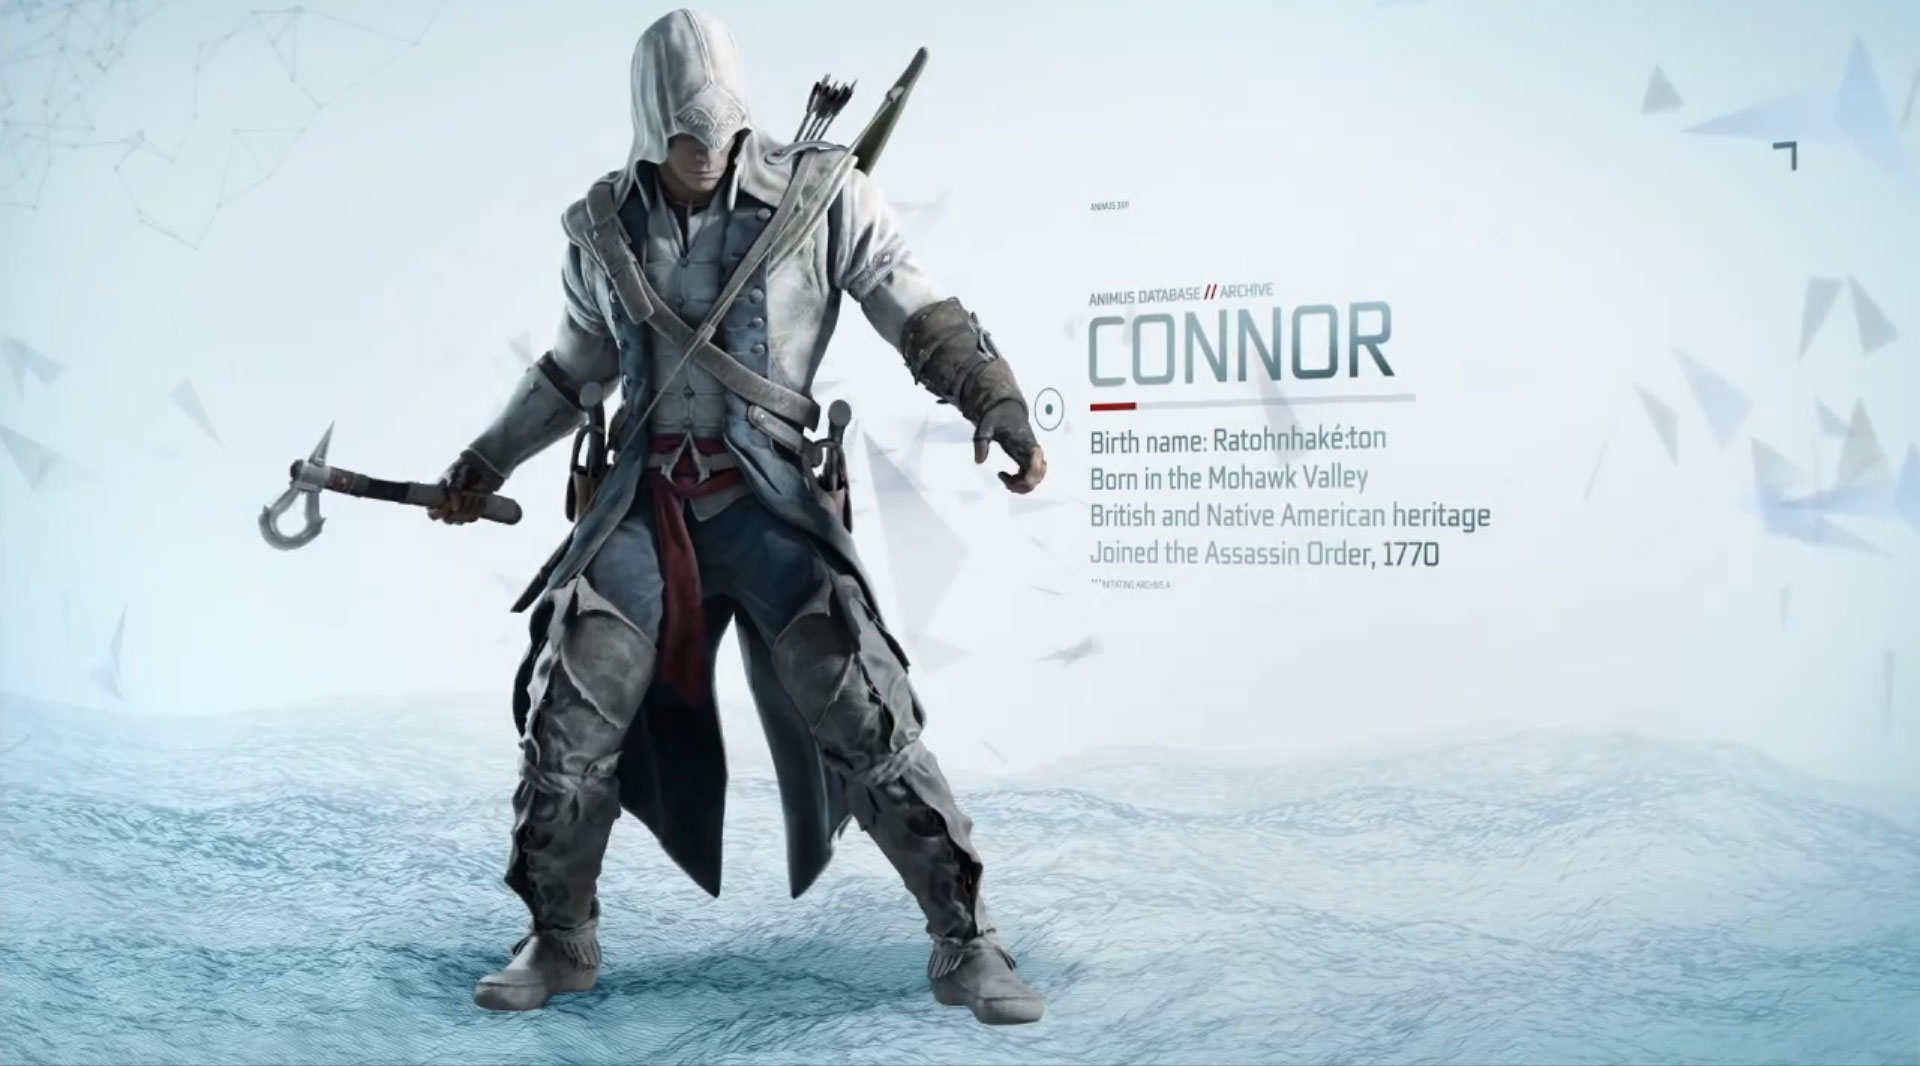 assassins creed 3 connor - photo #1